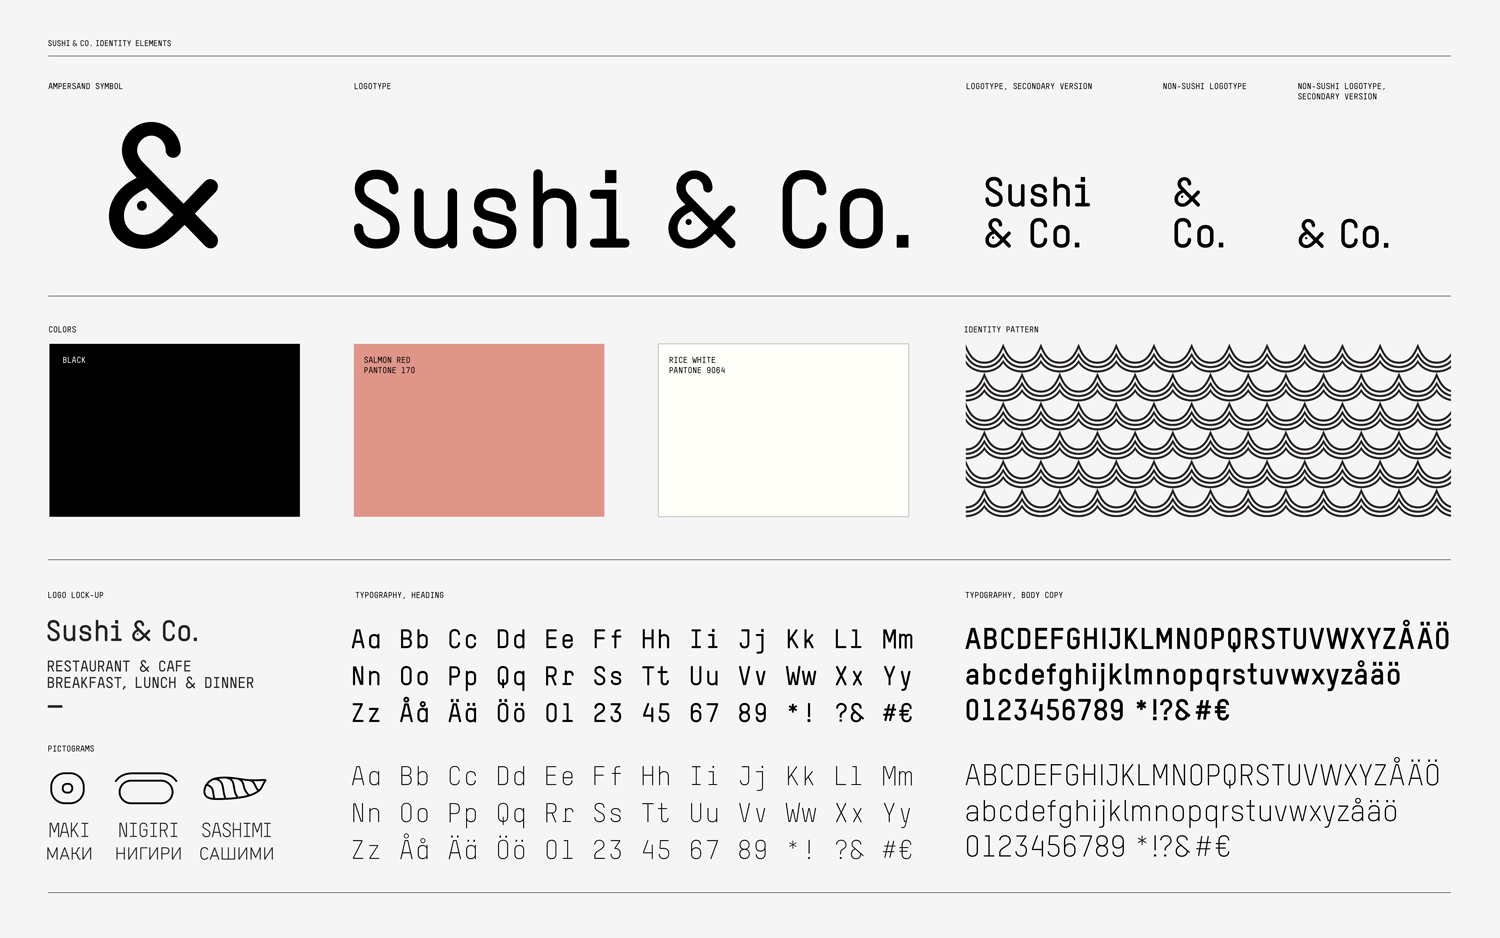 Brand guidelines for Baltic Sea cruise ship restaurant Sushi & Co. designed by Bond